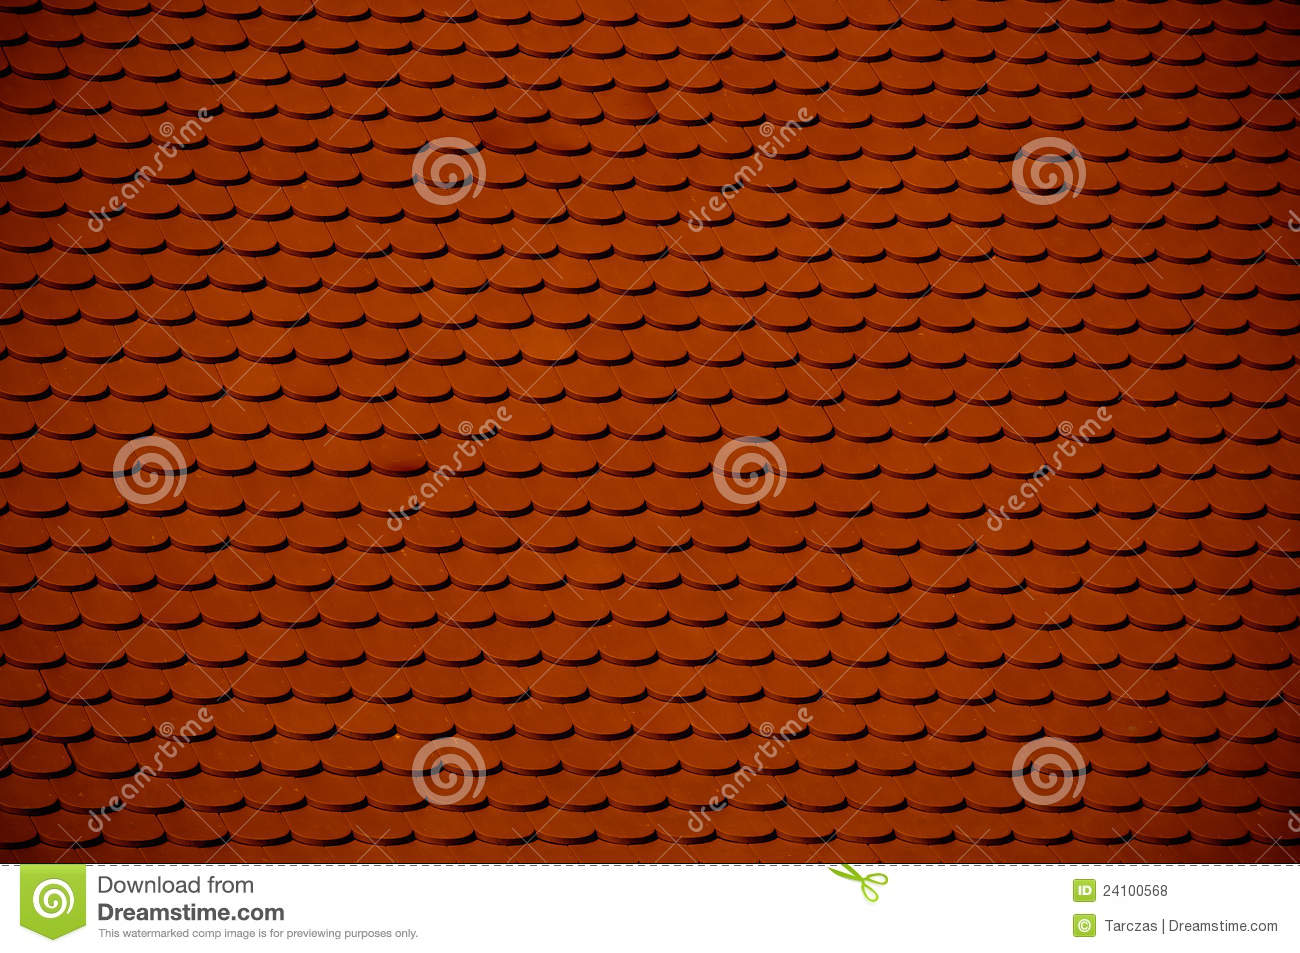 Red Clay Roof Tile Royalty Free Stock Photos - Image: 24100568